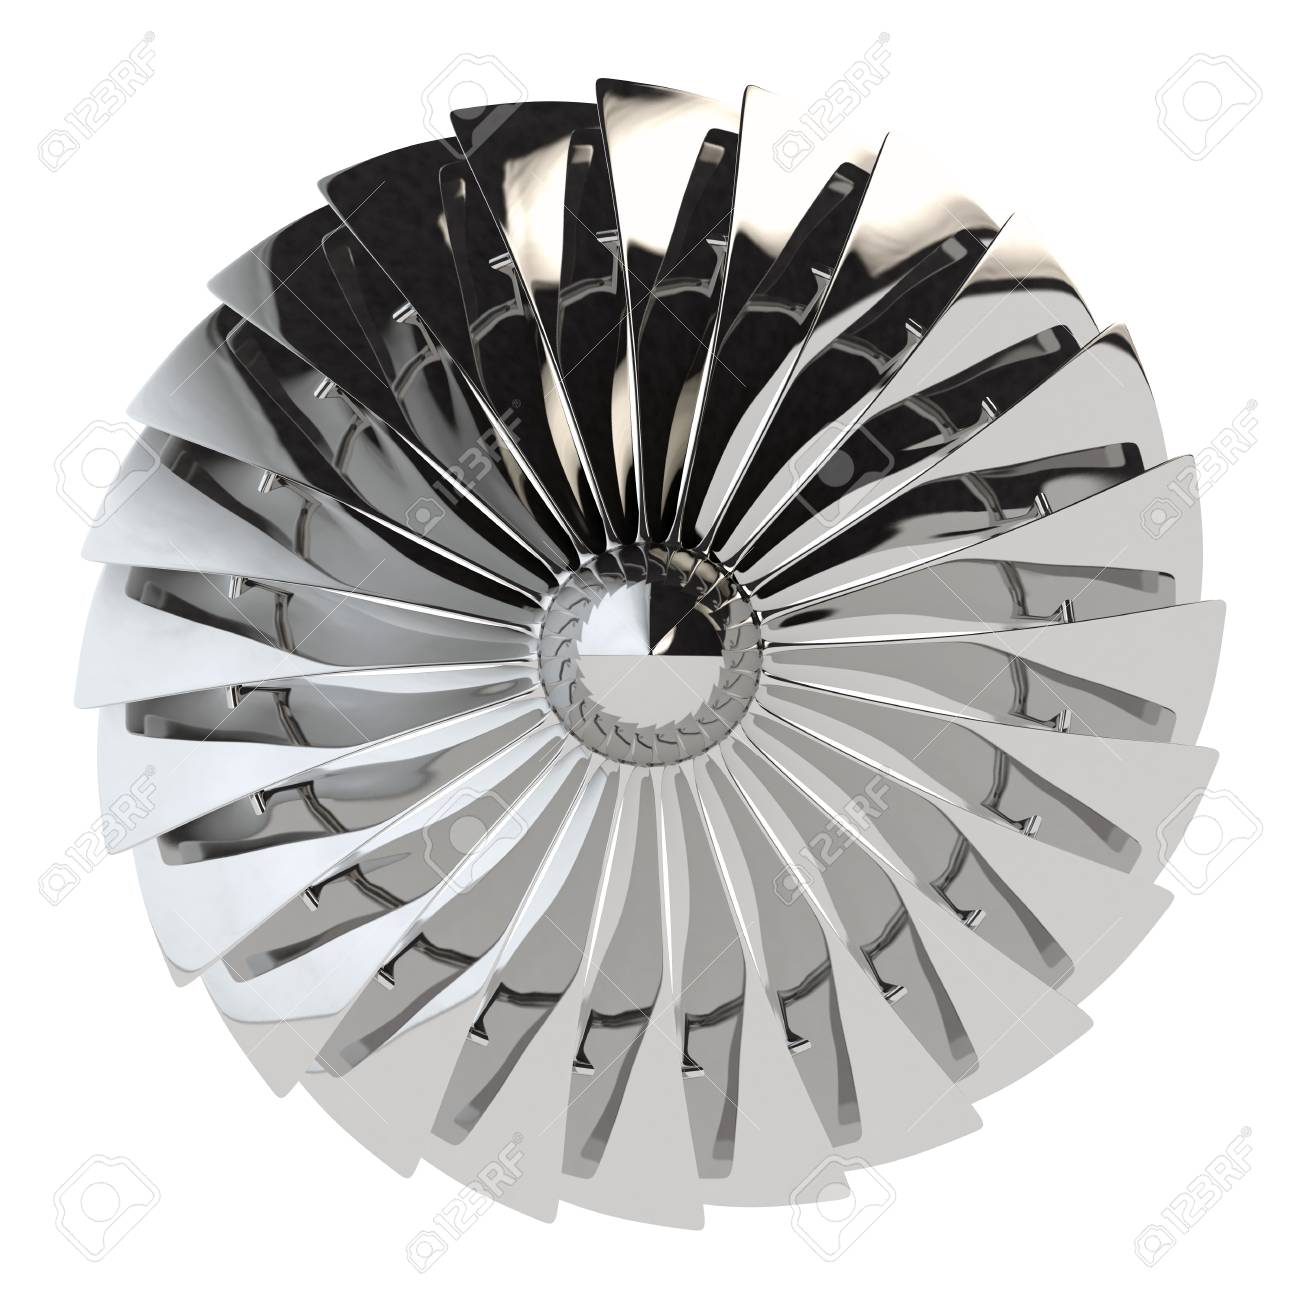 Jet engine, turbine blades of airplane, 3d render Stock Photo - 89887864